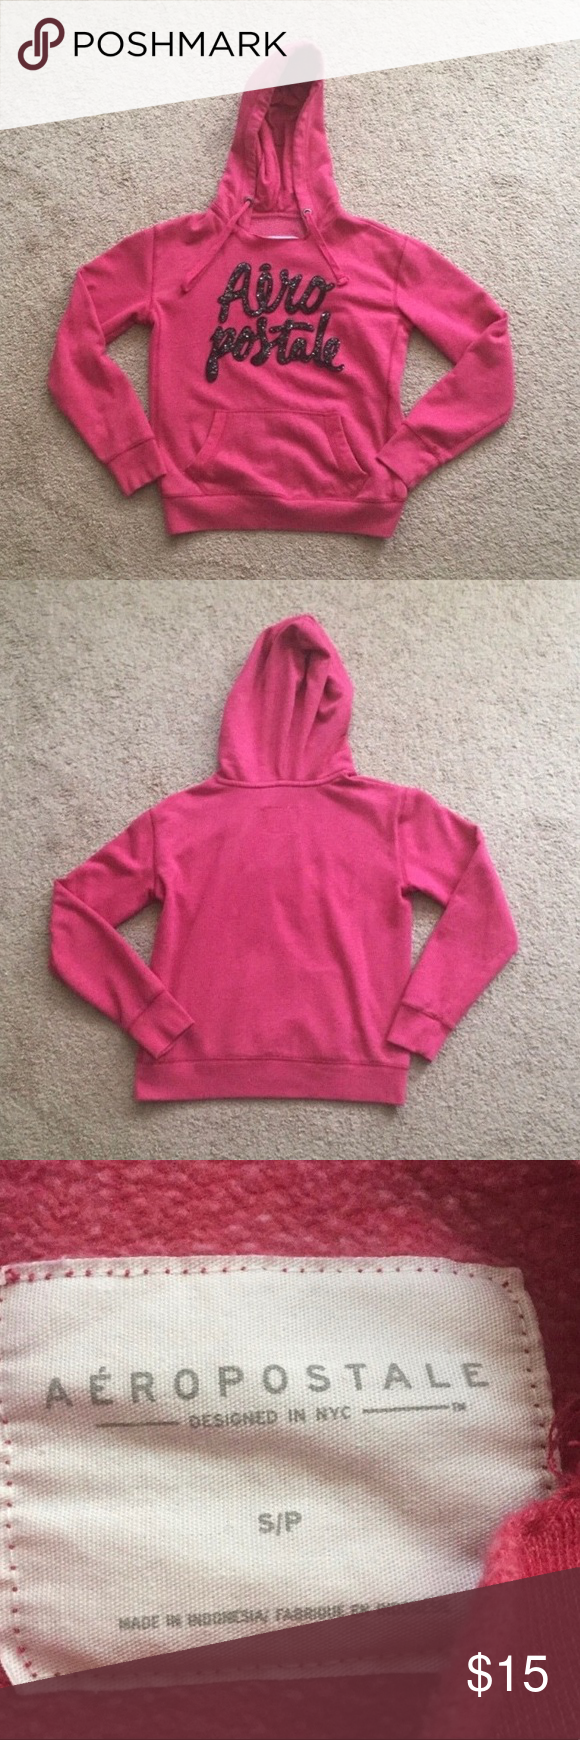 Aeropostale Women's Pink Hoodie Size S 👉Worn Lightly But